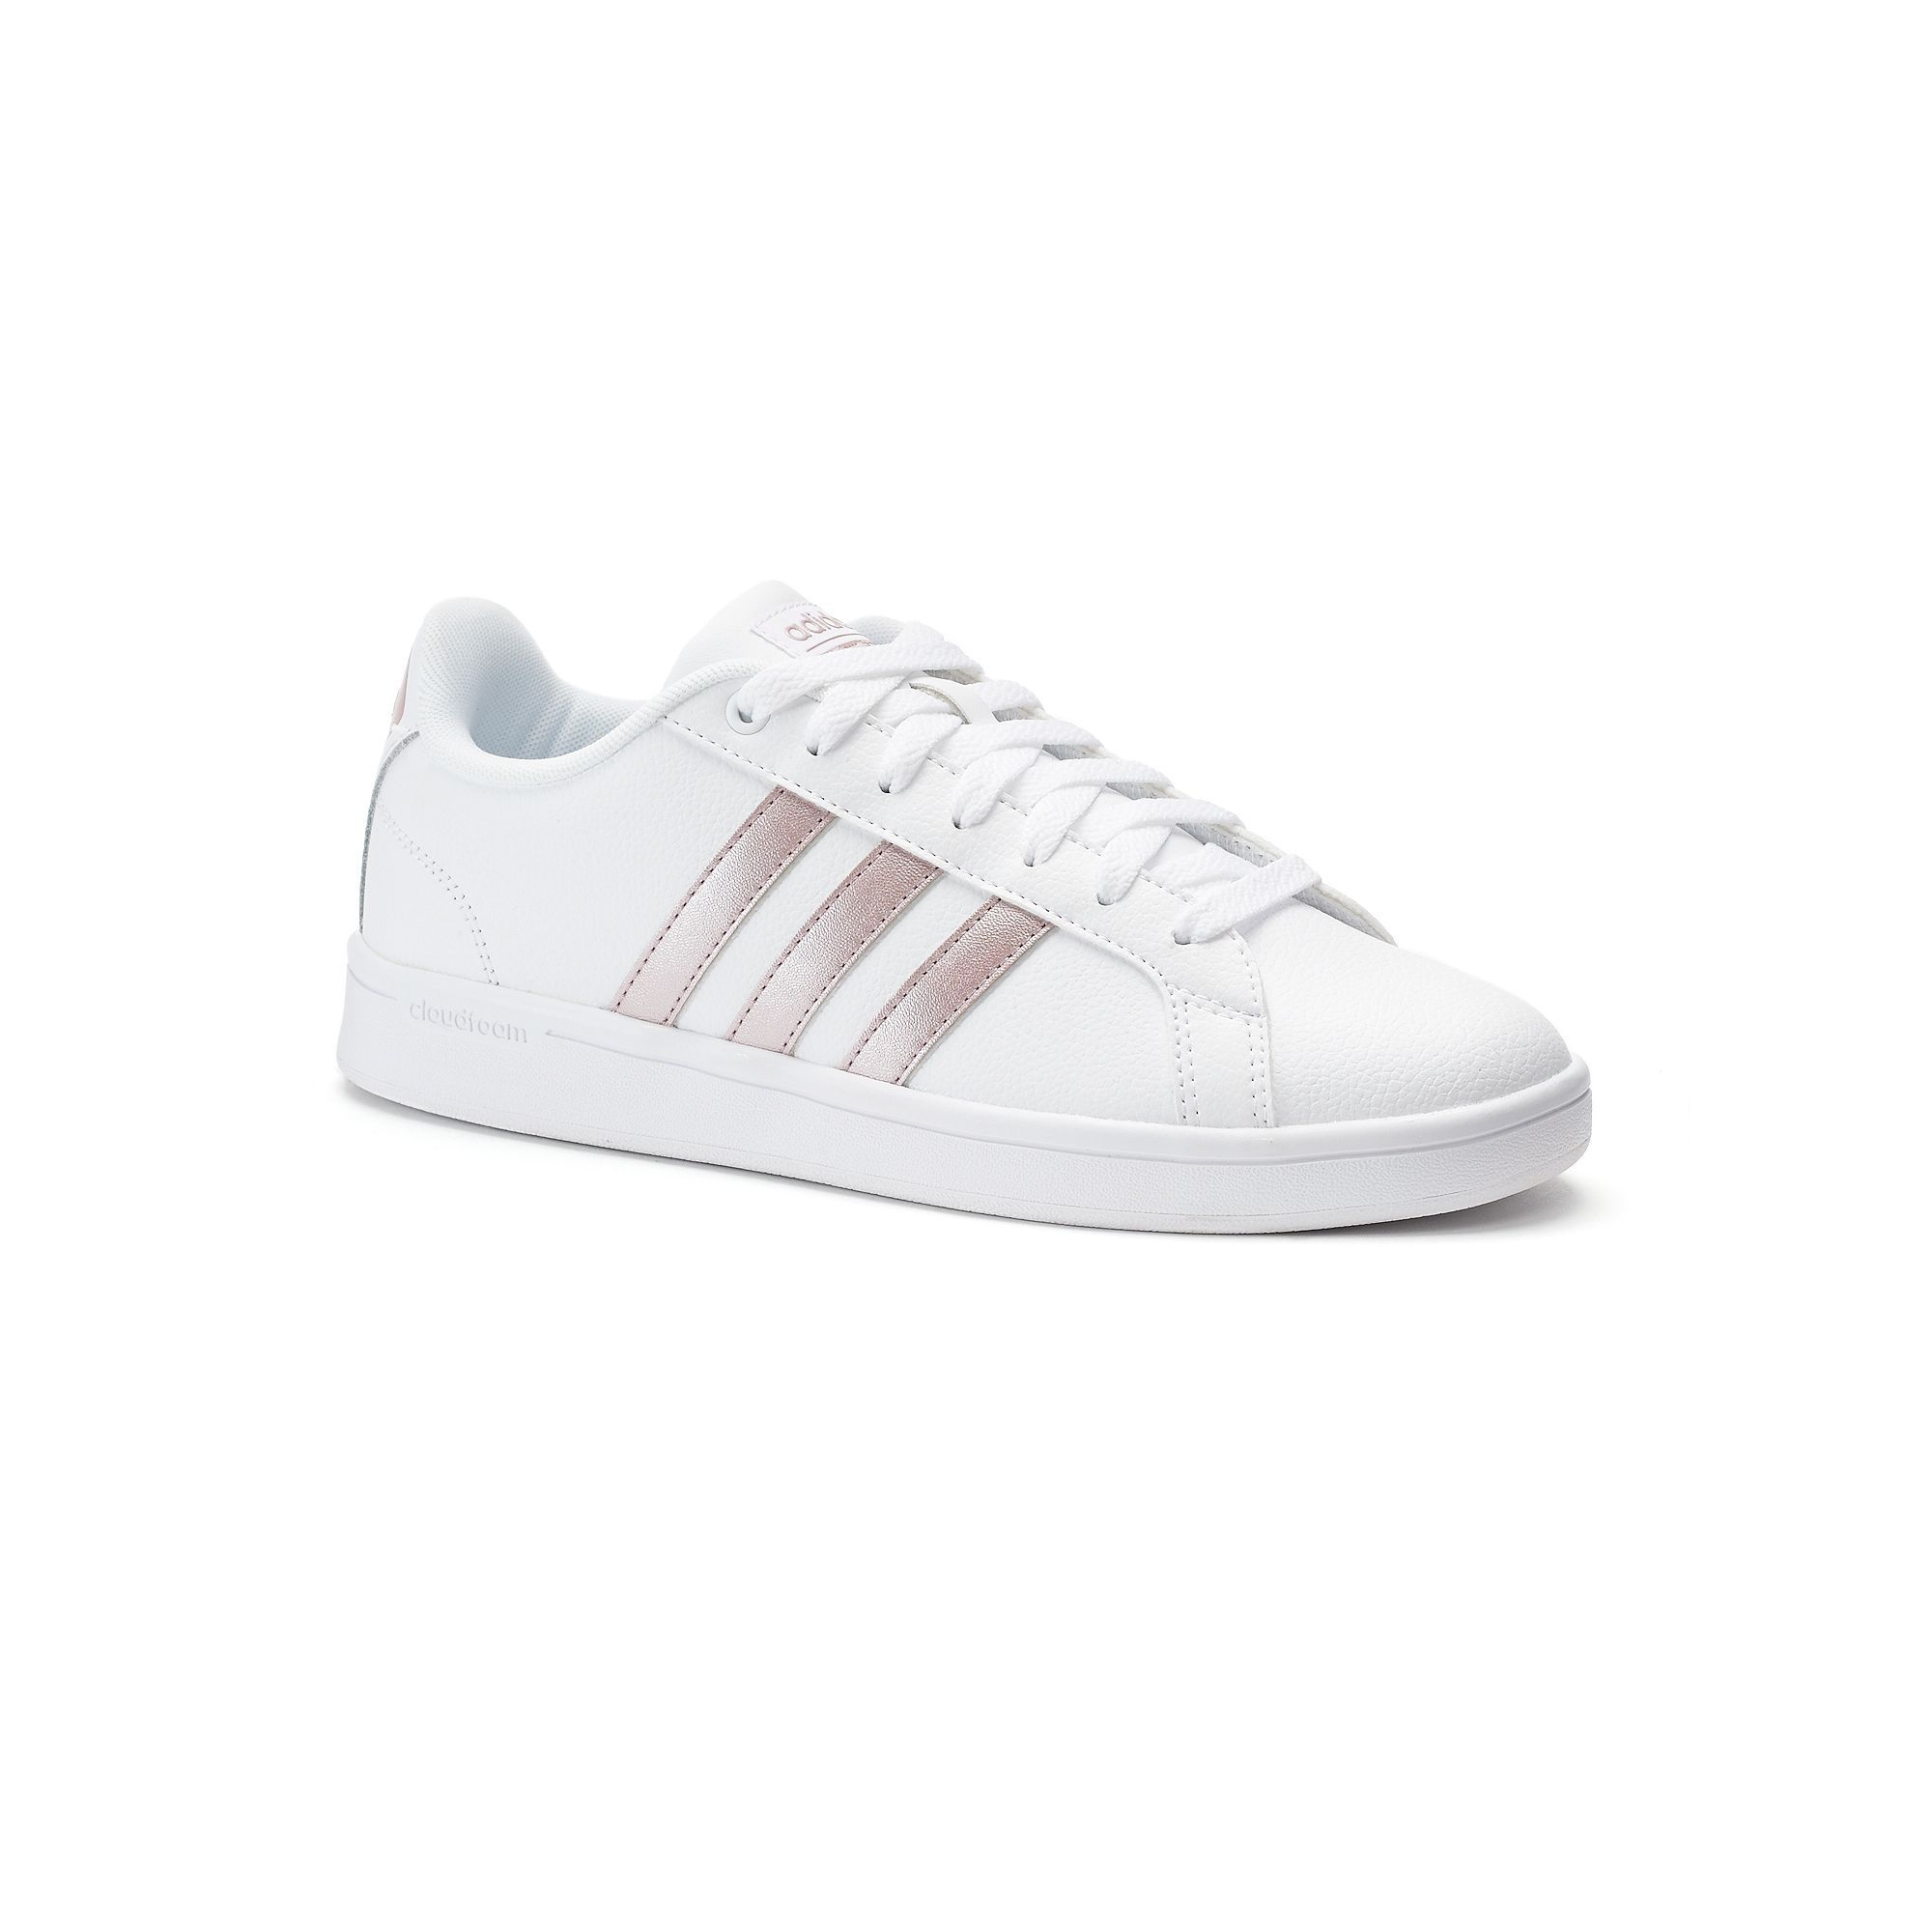 ADIDAS Women's Shoes Adidas NEO Cloudfoam Advantage Stripe